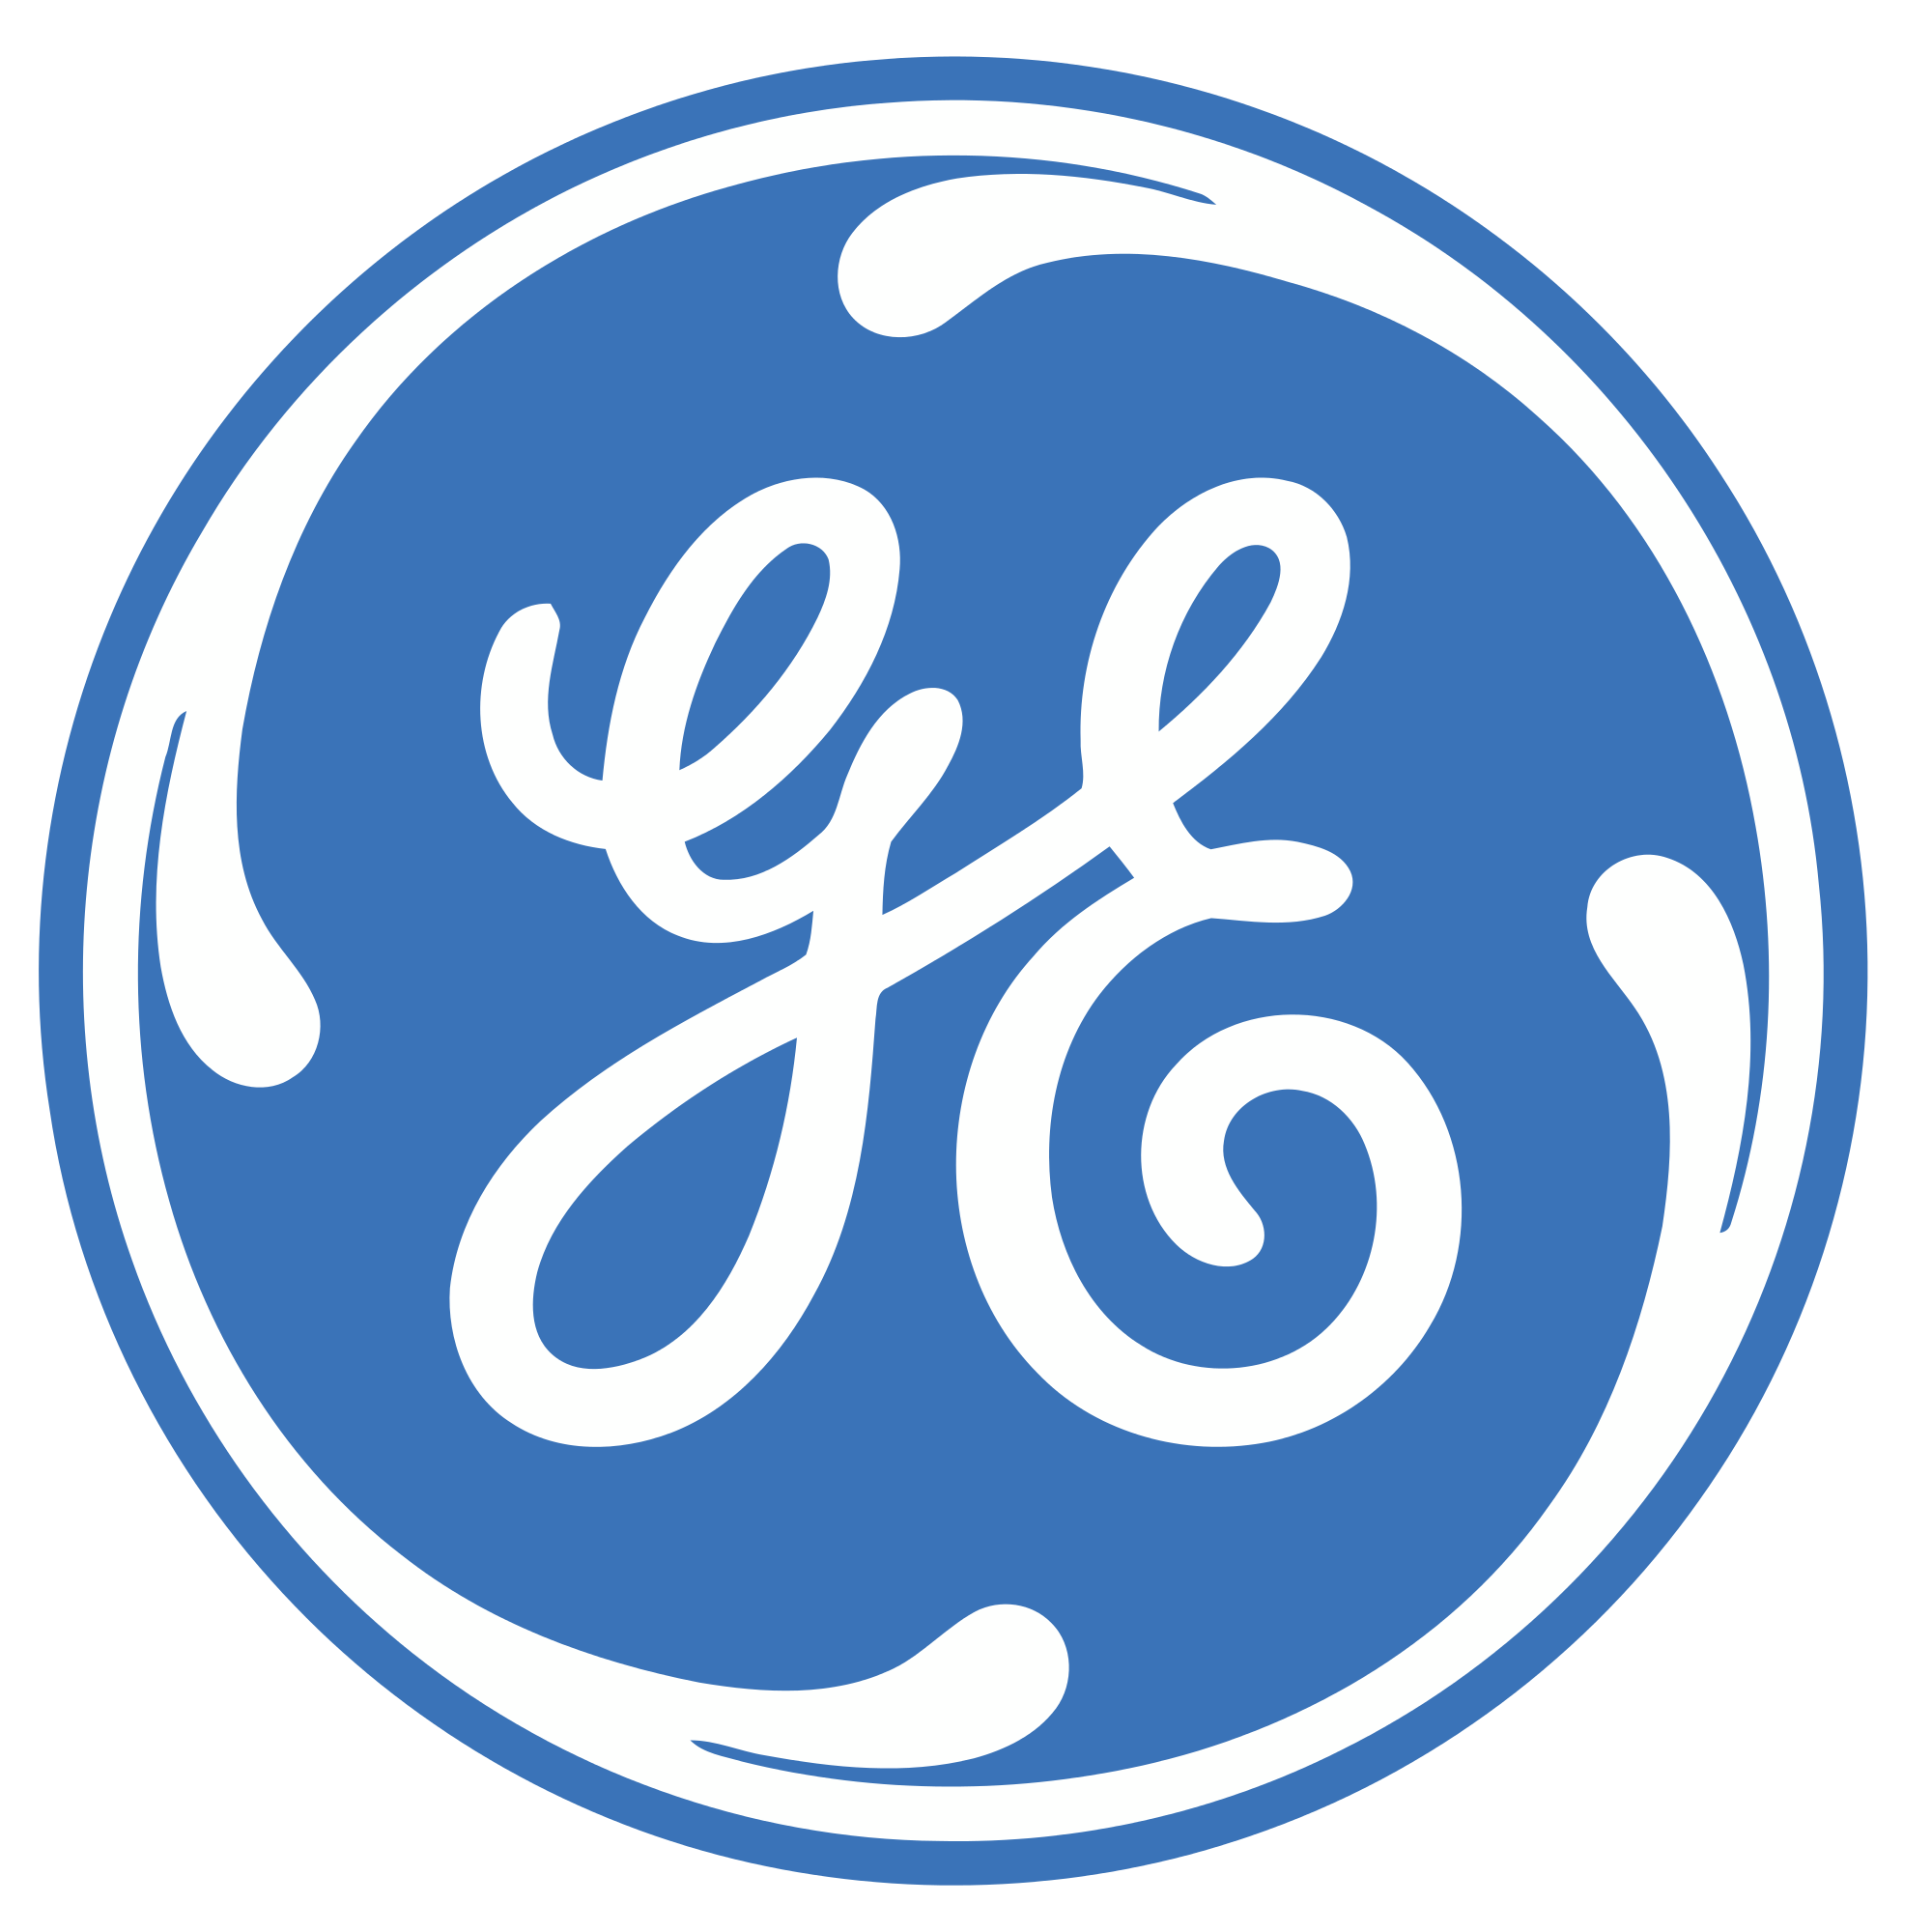 a business report on general electric a transnational organization Part of the international business commons, organizational behavior and   and procter & gamble in the branded package products business ge, philips,   including publicly available official company reports, financial performance,  and.